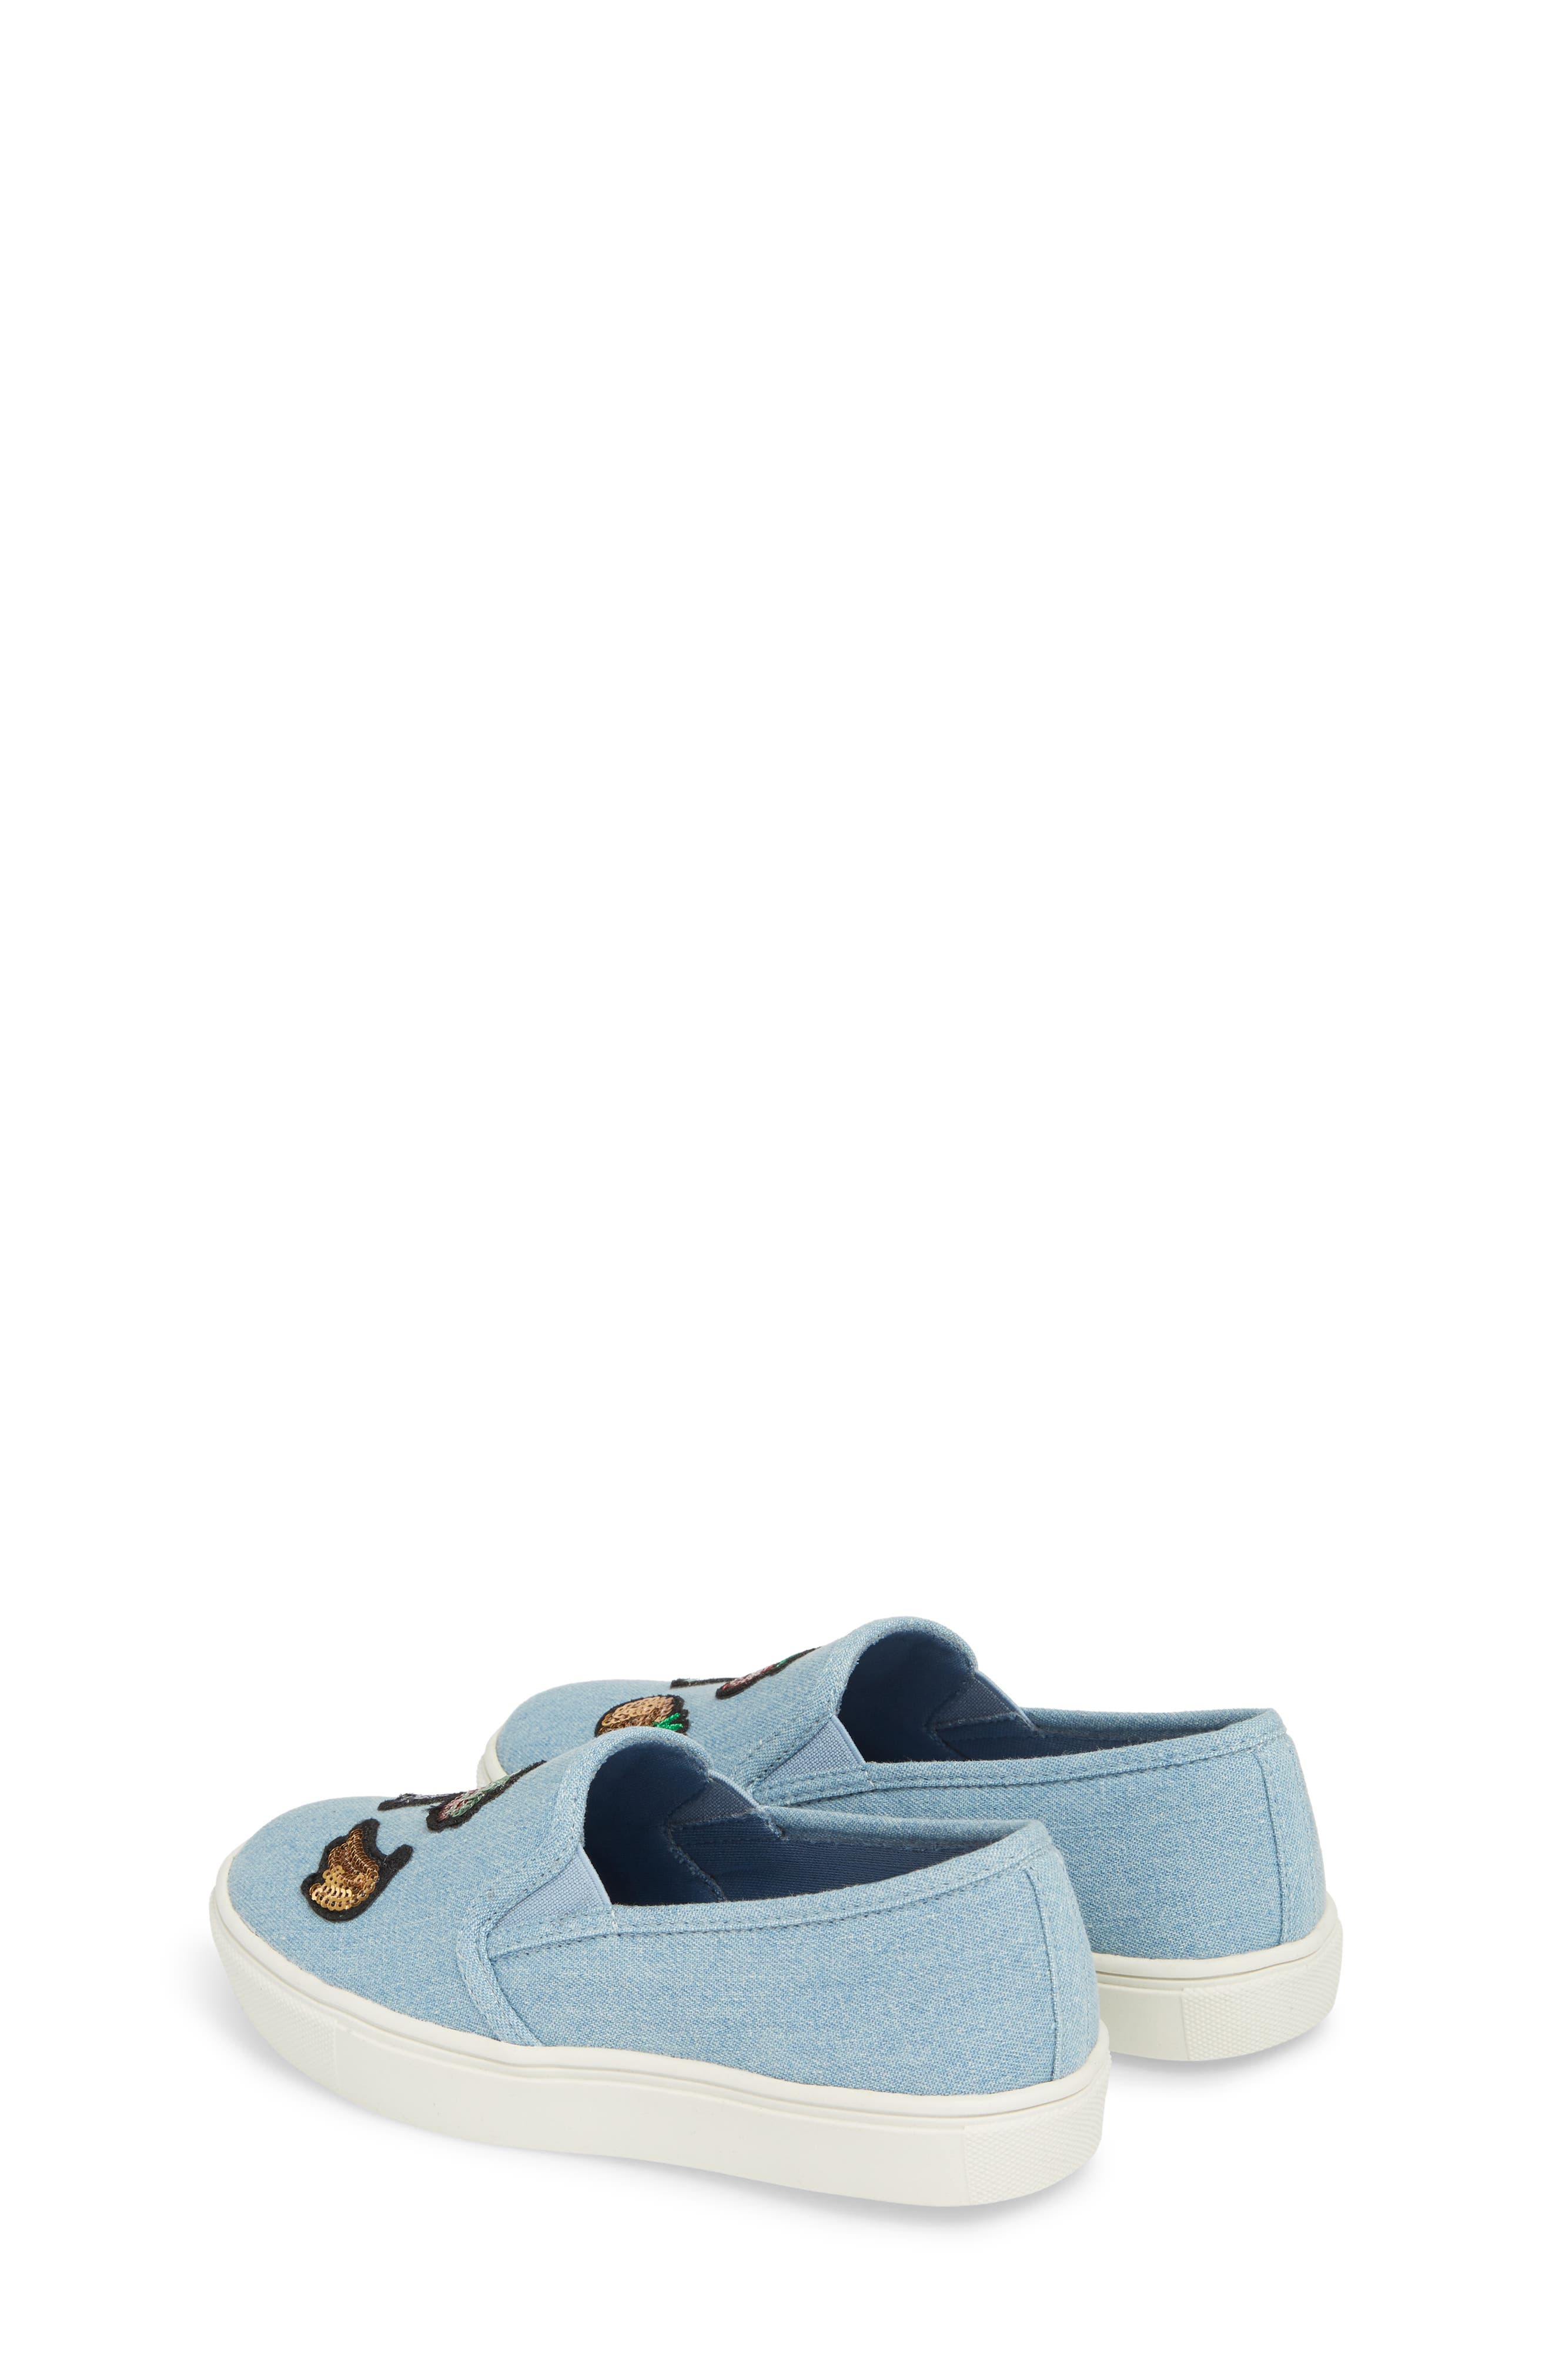 Twinny Snack Appliqué Sneaker,                             Alternate thumbnail 2, color,                             Chambray Fabric